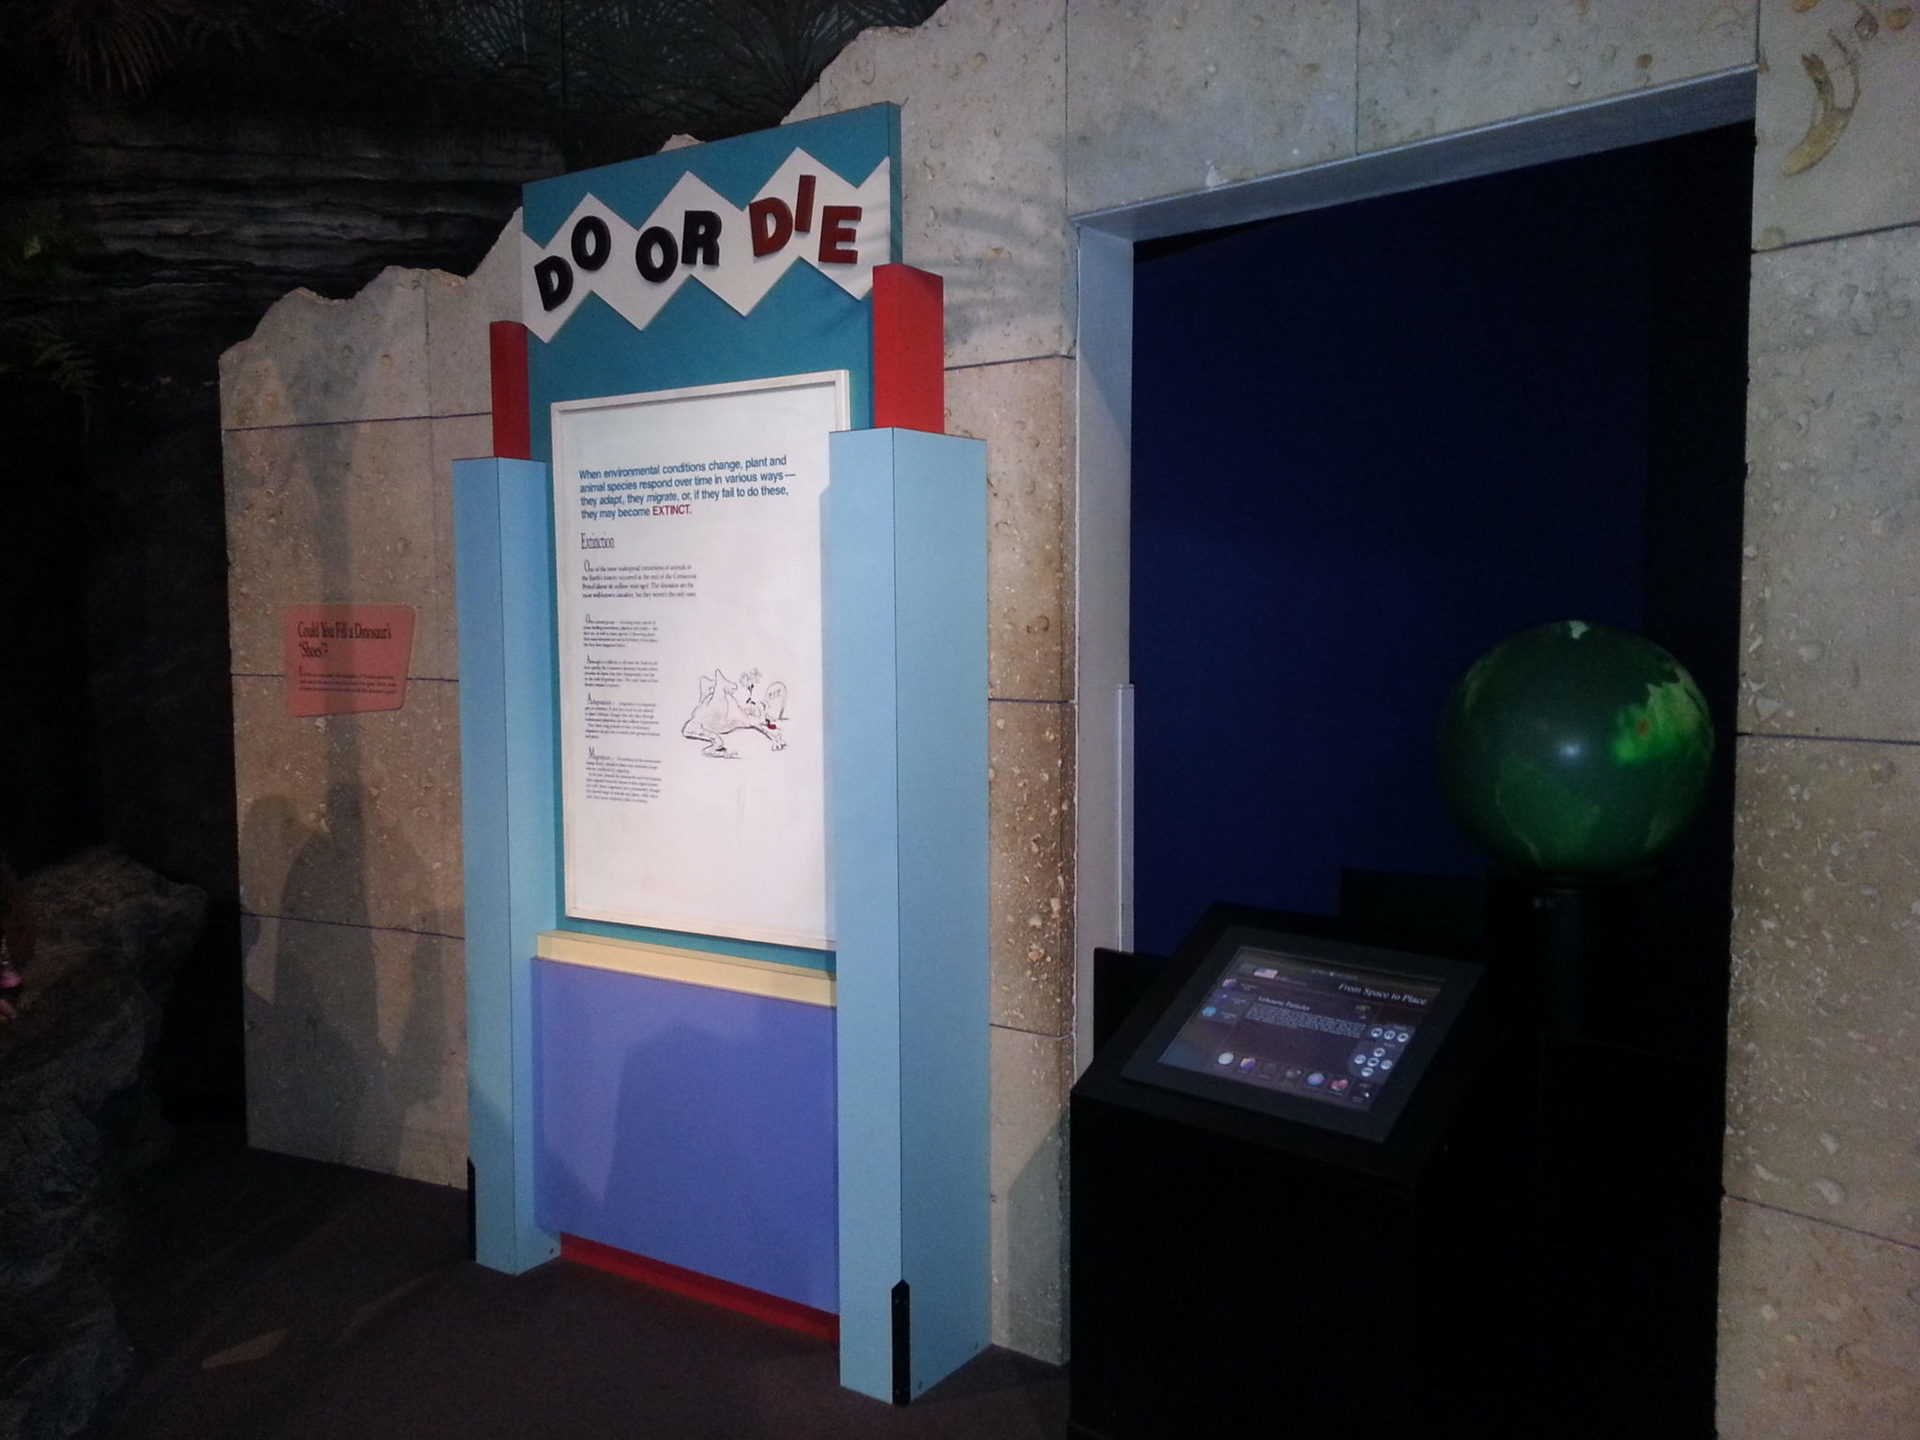 St Louis Science Center - Do or Die